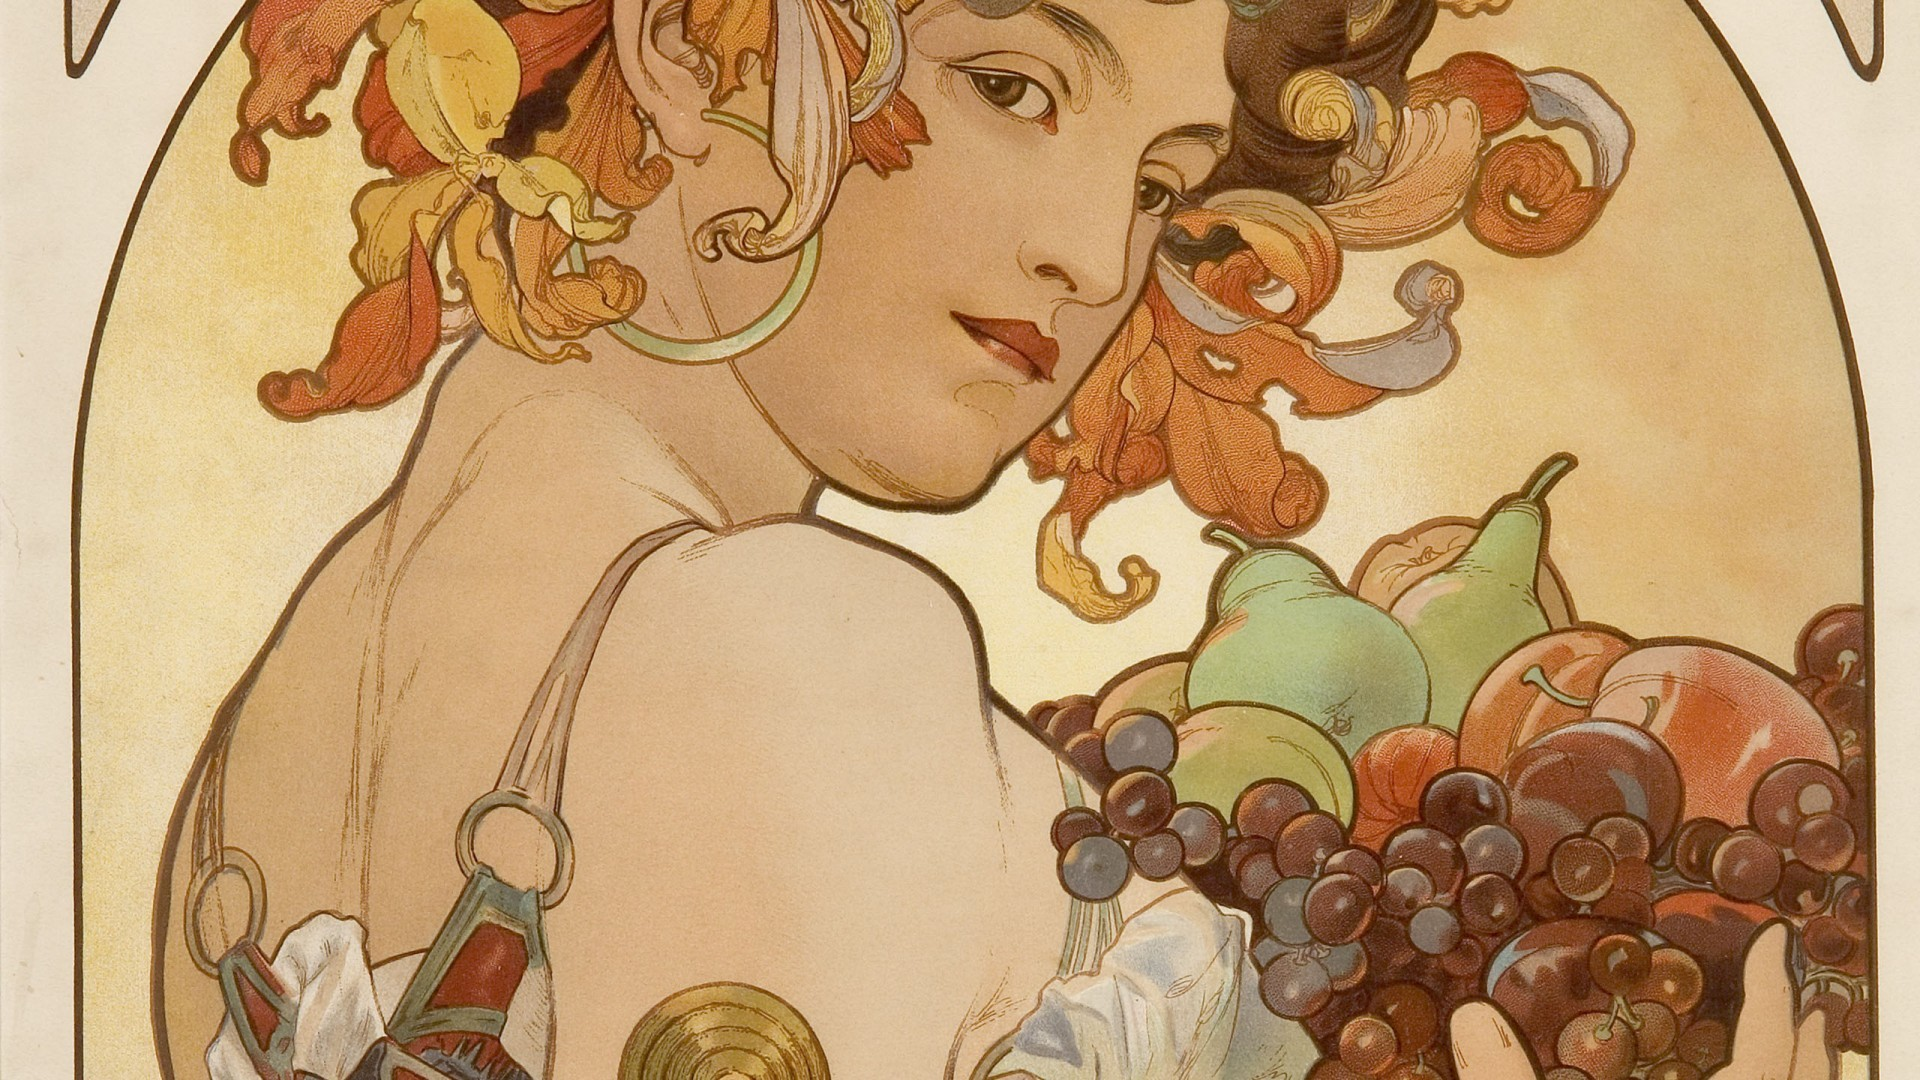 1920x1080 Alphonse Mucha Wallpaper Hd Resolution